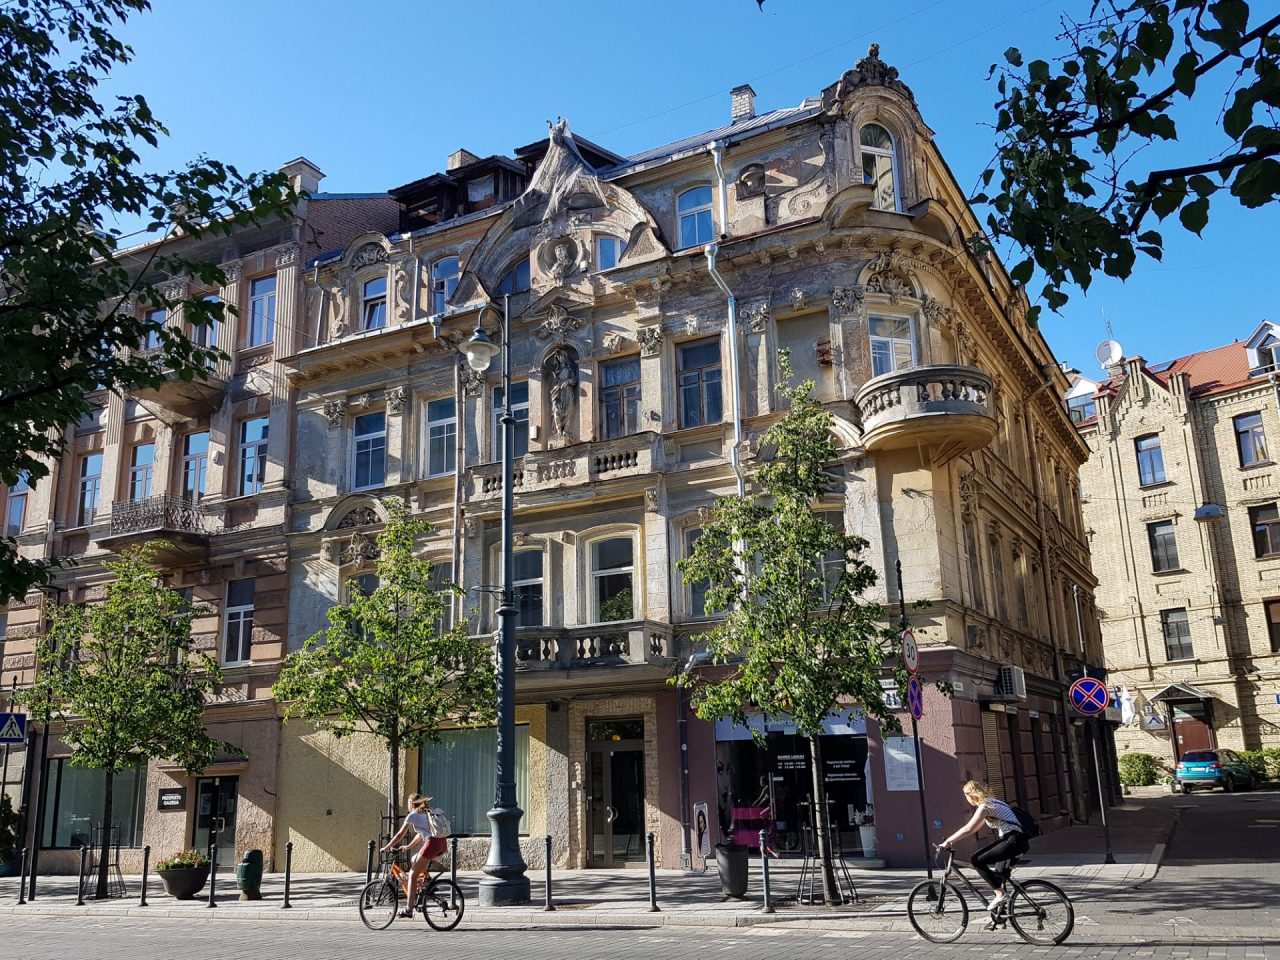 lituanie-vilnius-avenue-immeubles-cyclistes